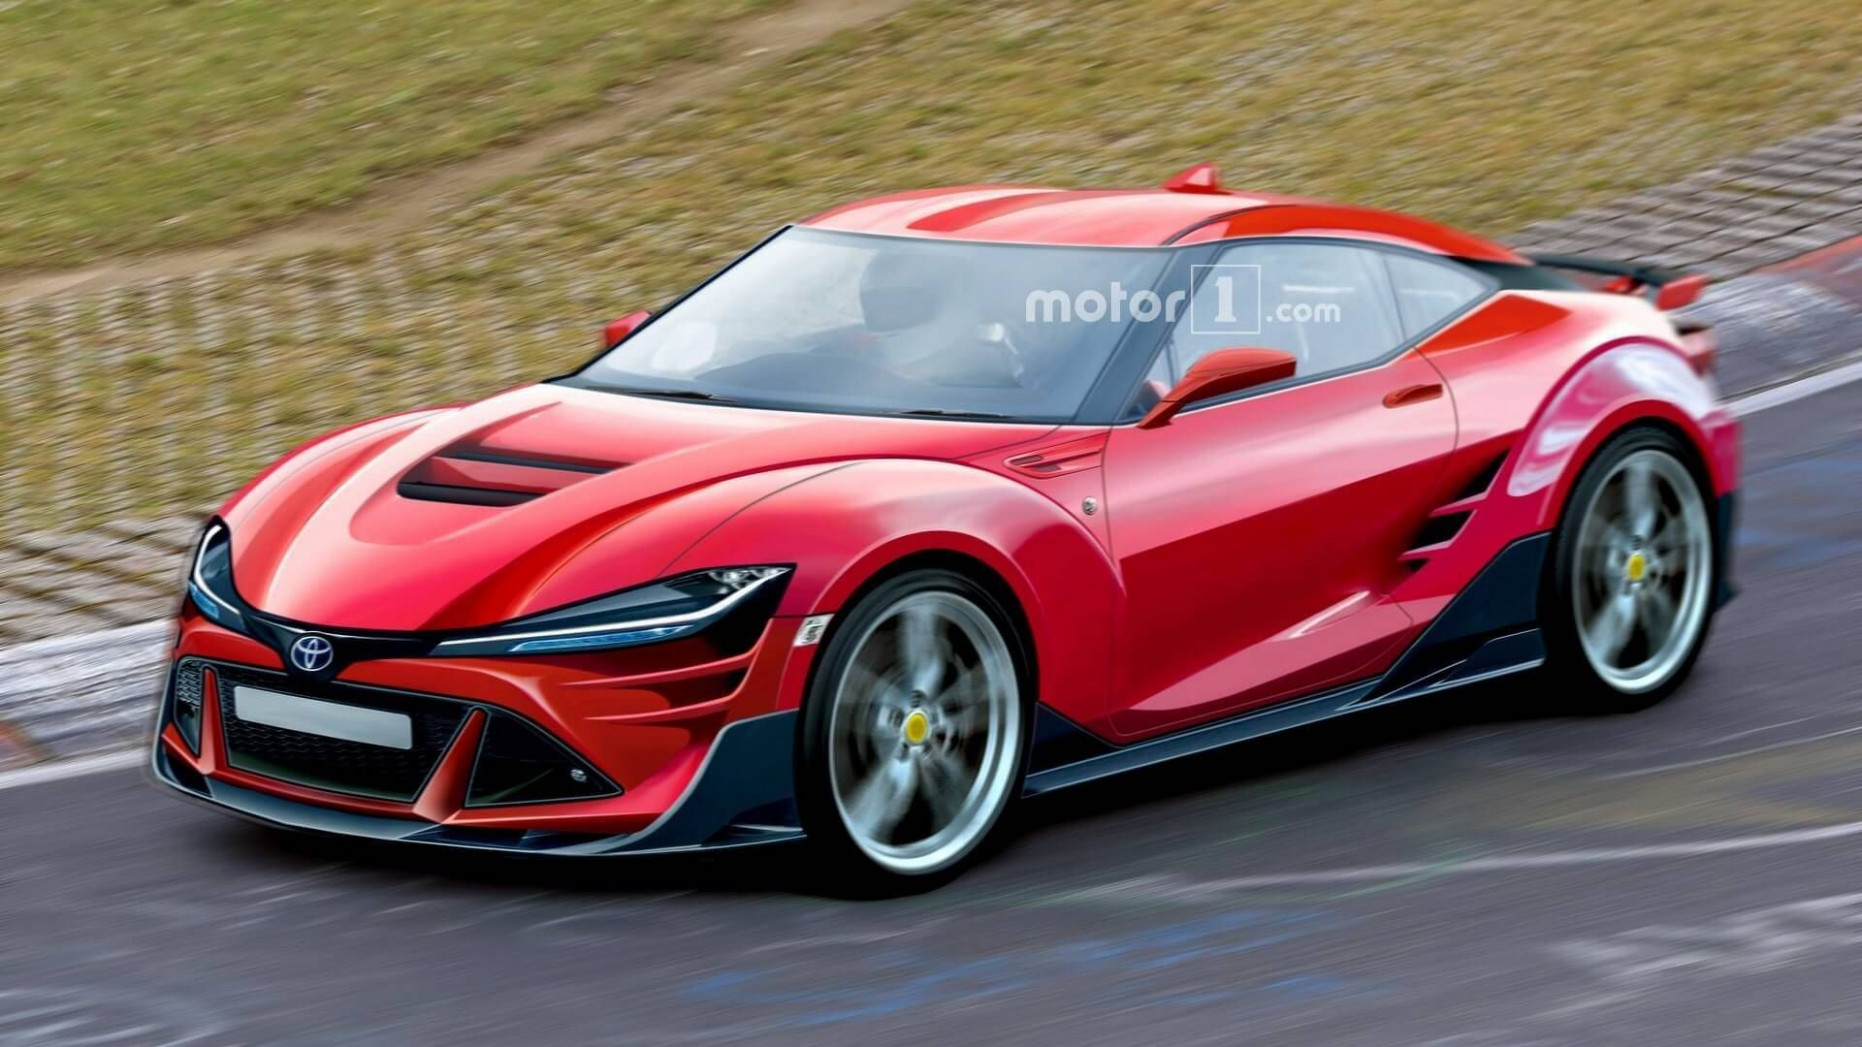 Gt8 Toyota 8 Ratings | Toyota new car, Toyota gt8, Toyota 8 - 2020 toyota frs